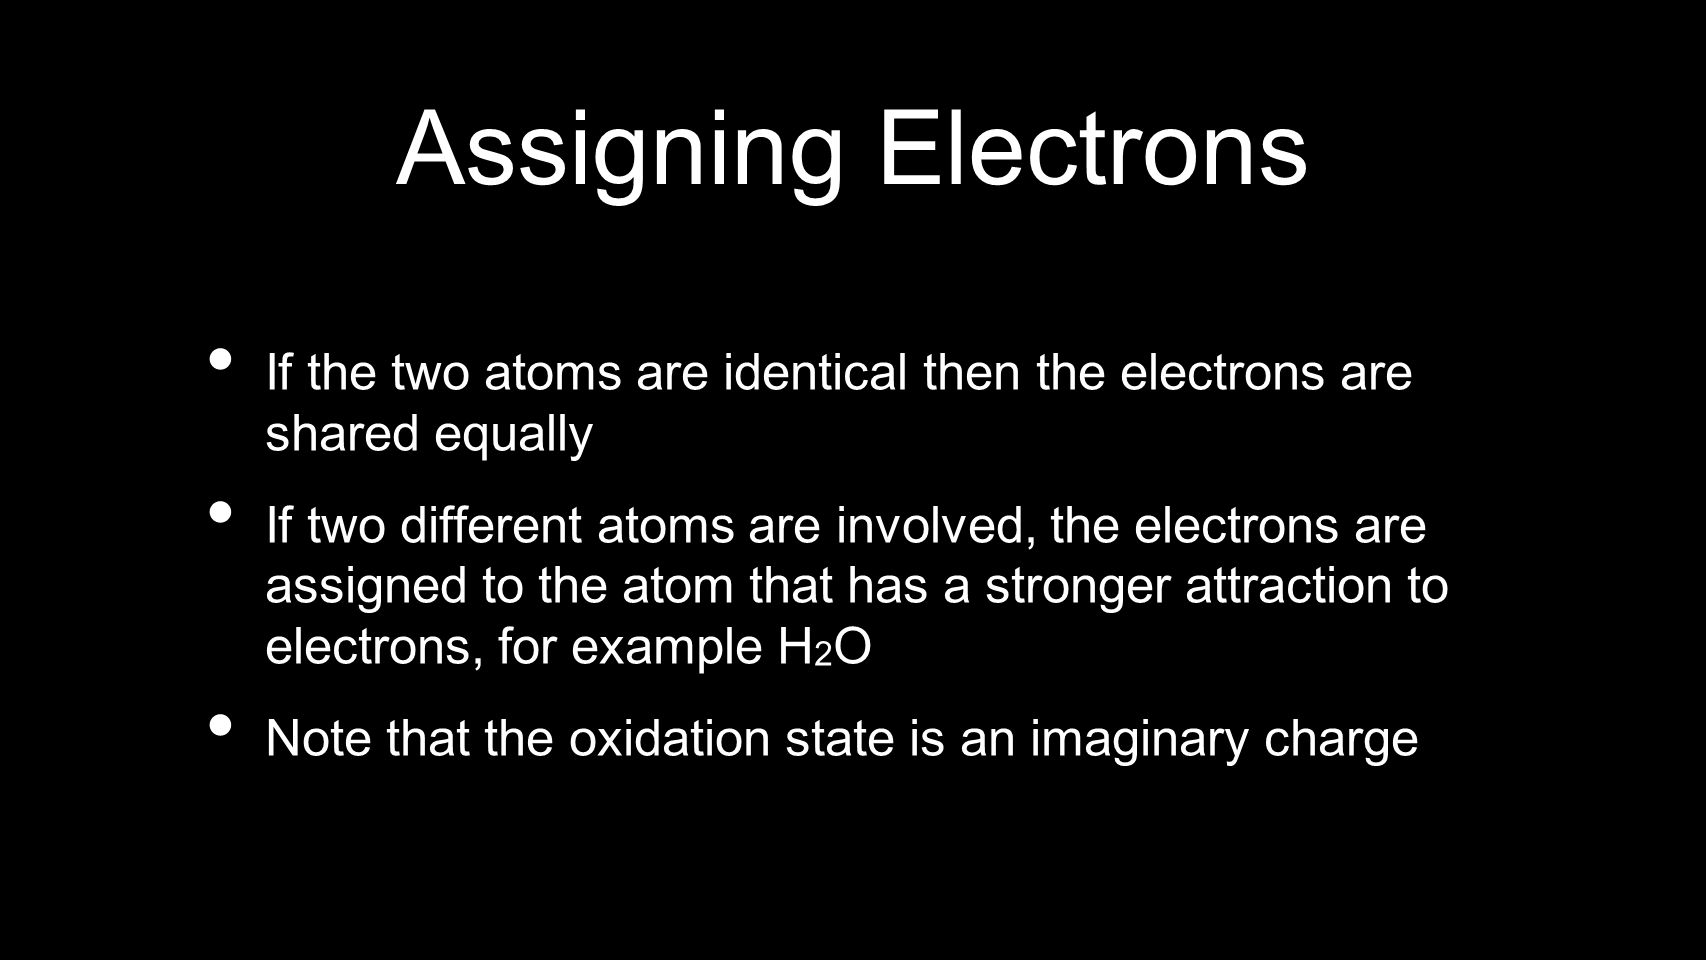 Assigning Electrons If the two atoms are identical then the electrons are shared equally.